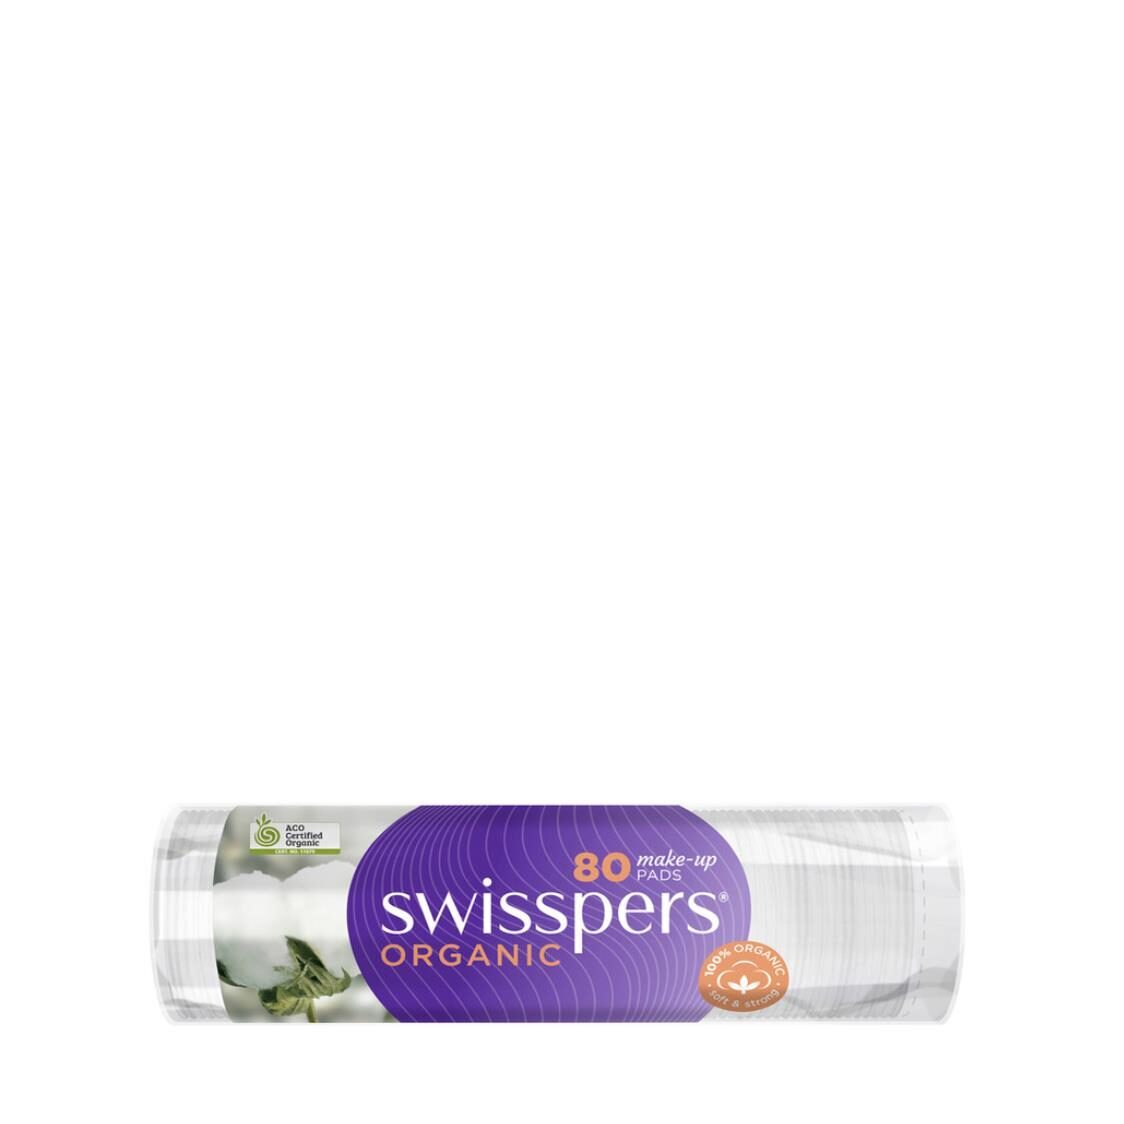 Swisspers Organic Make Up Pads Rounds 80 Sheets